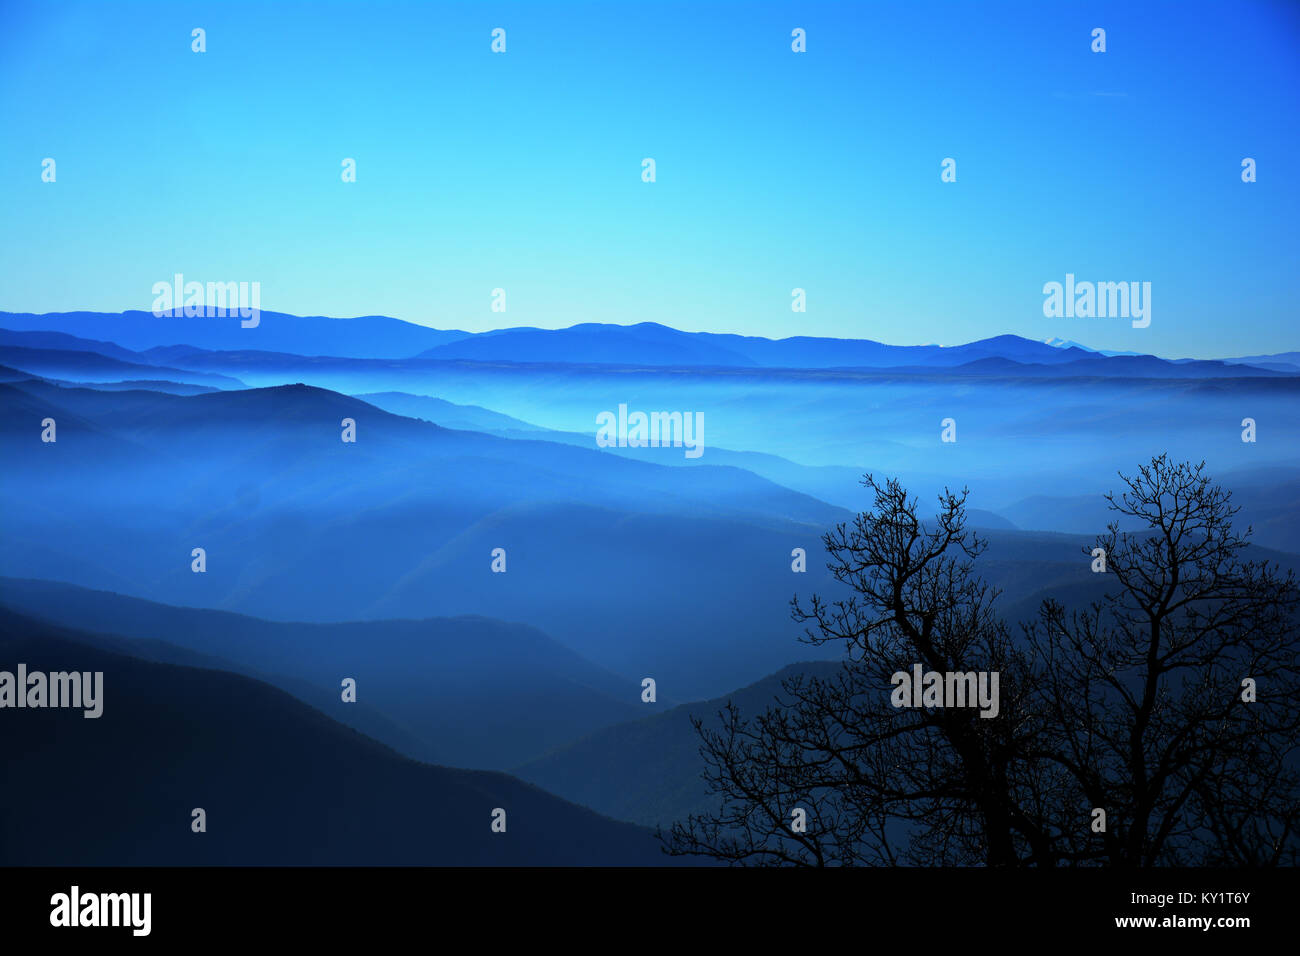 wavy blue mountains and fog - Stock Image